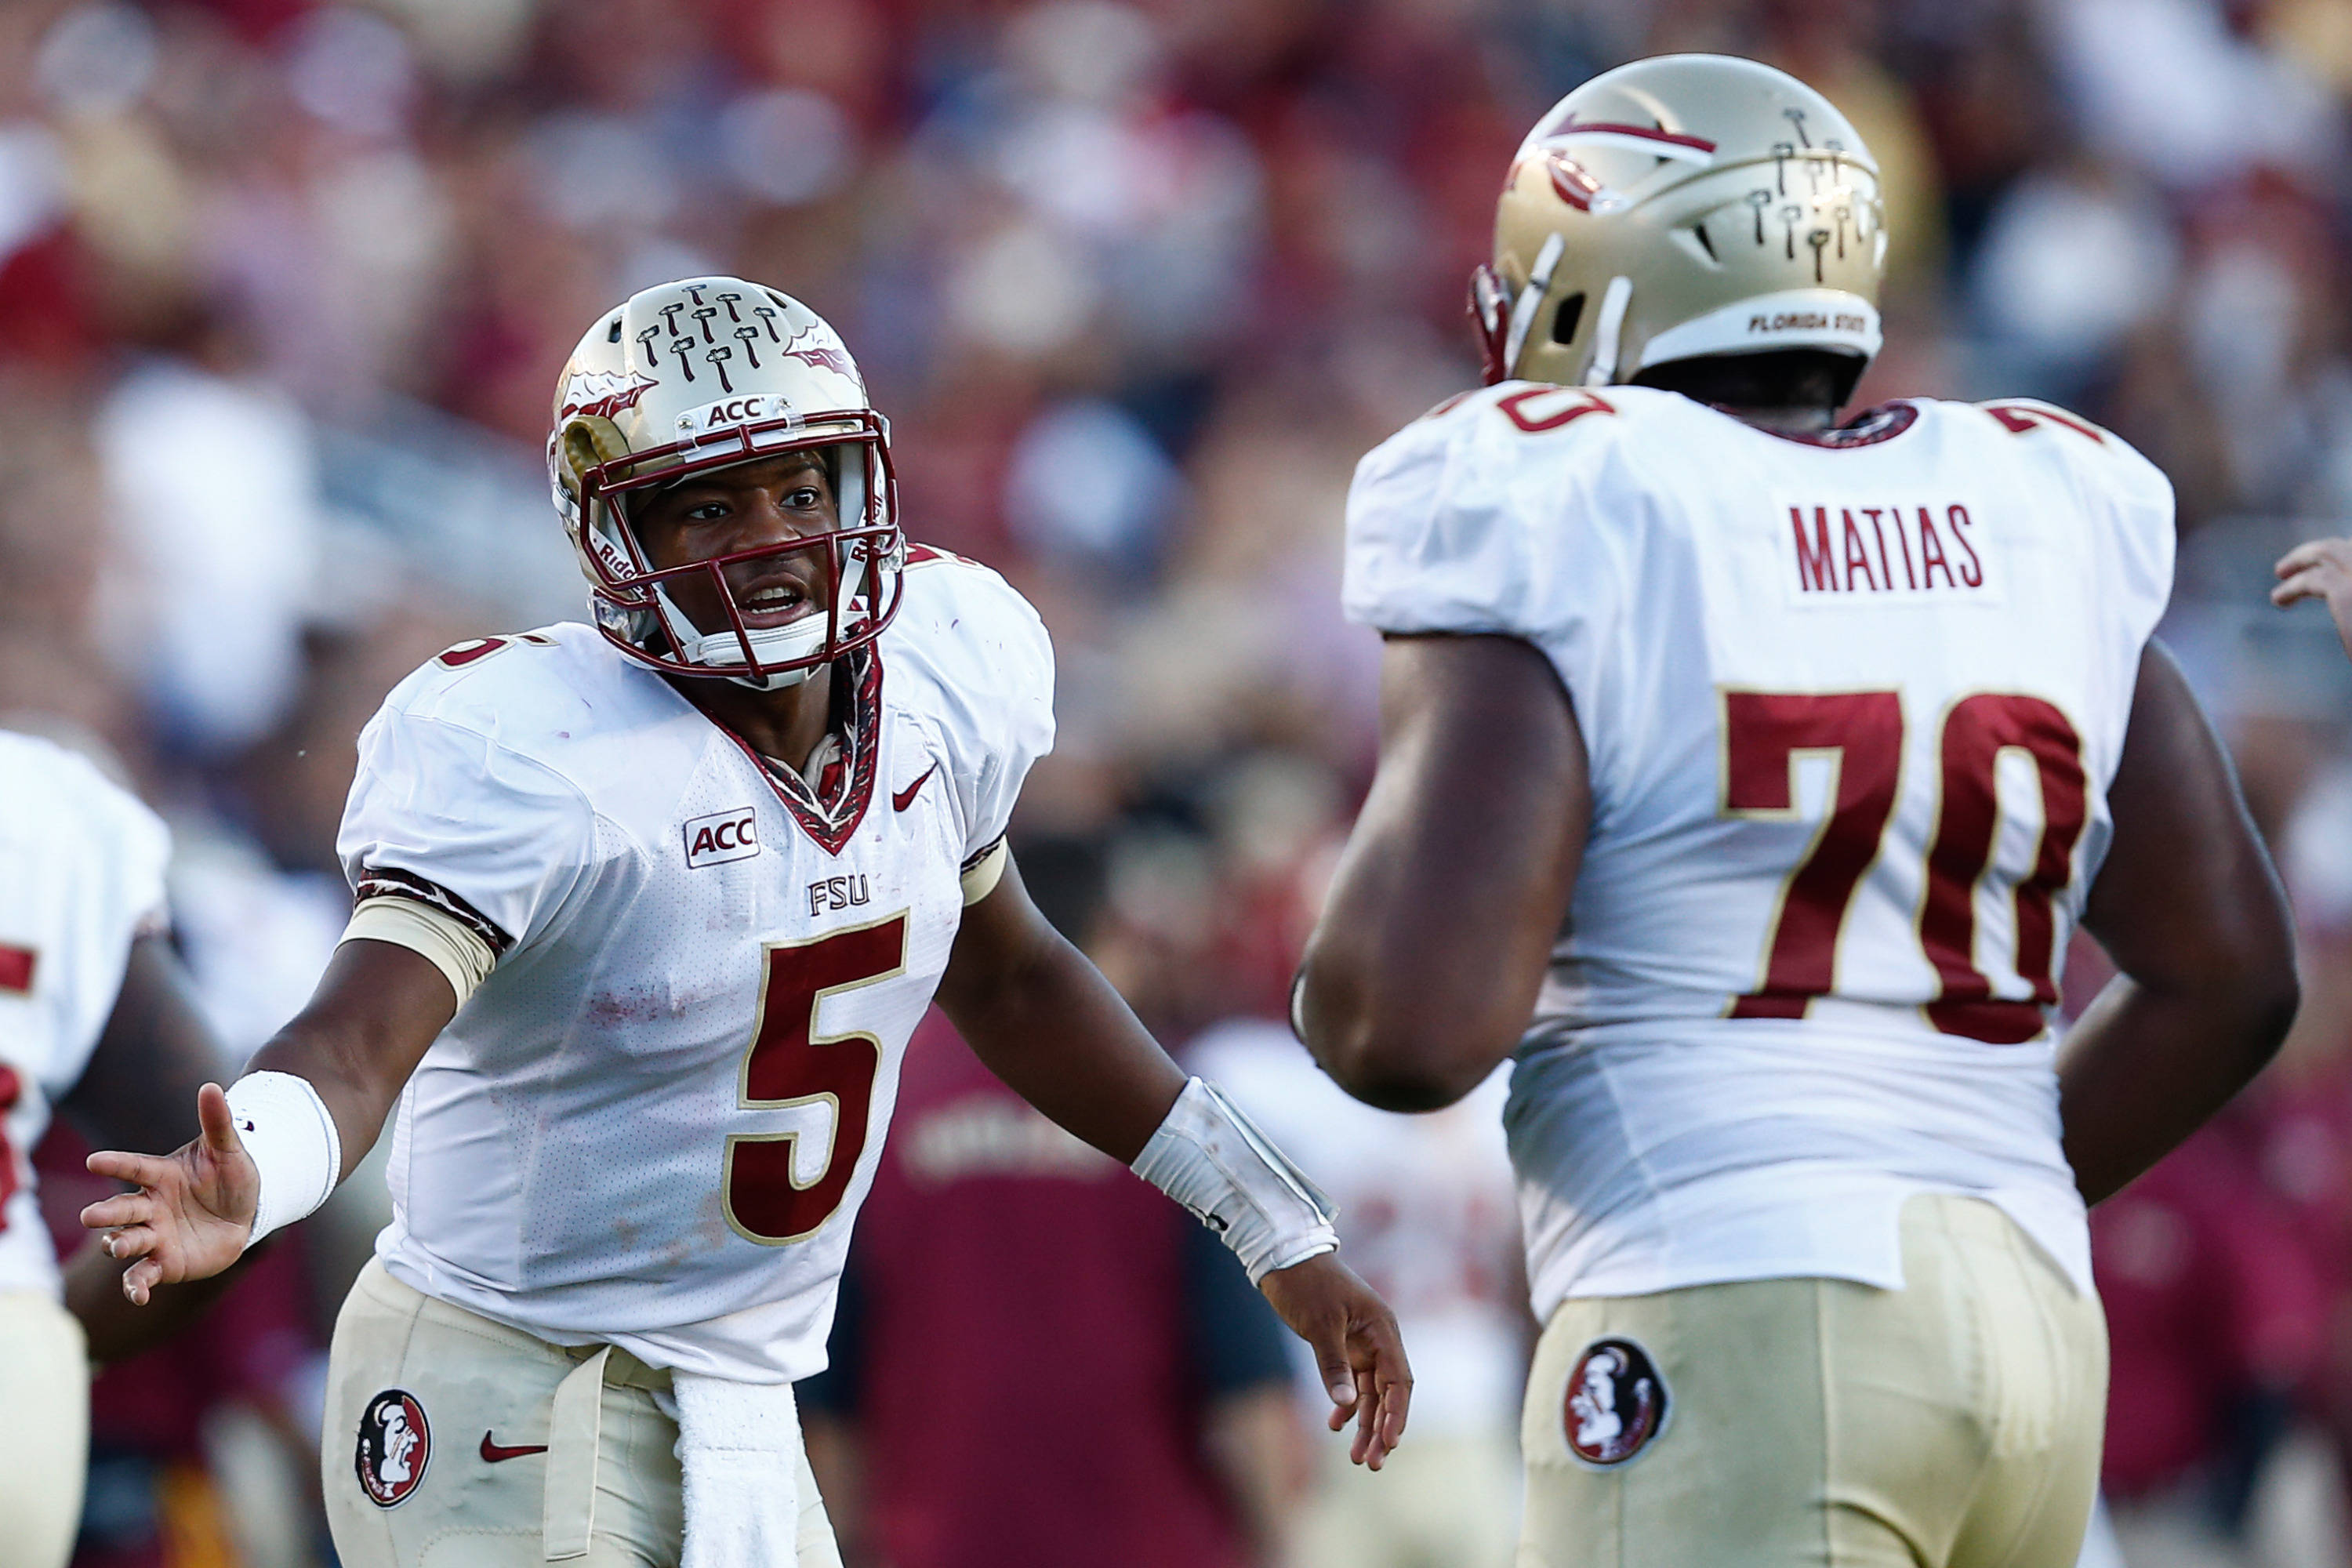 Jameis Winston (5) and Josue Matias (70) celebrate. Mandatory Credit: Mark L. Baer-USA TODAY Sports